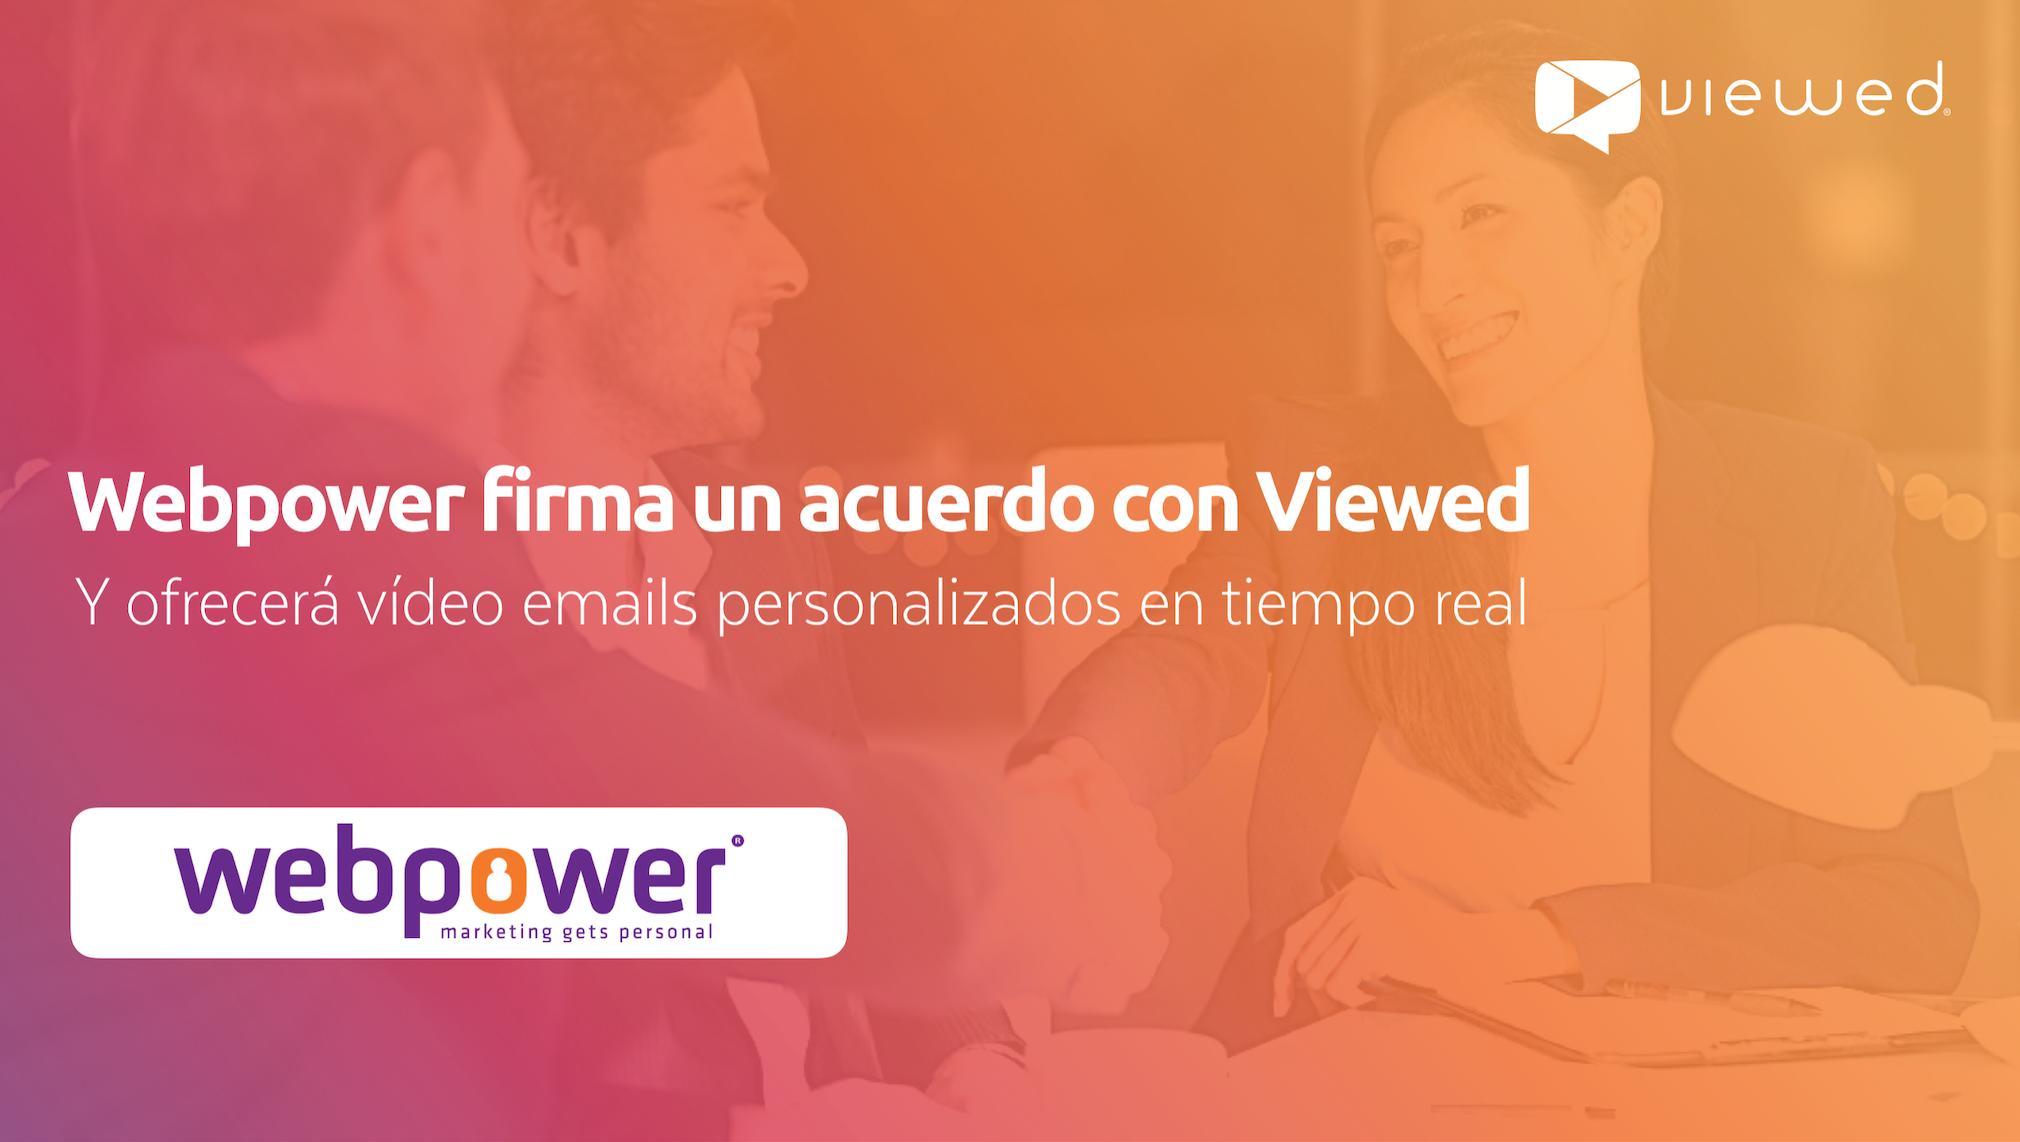 webpower firma acuerdo con Viewed